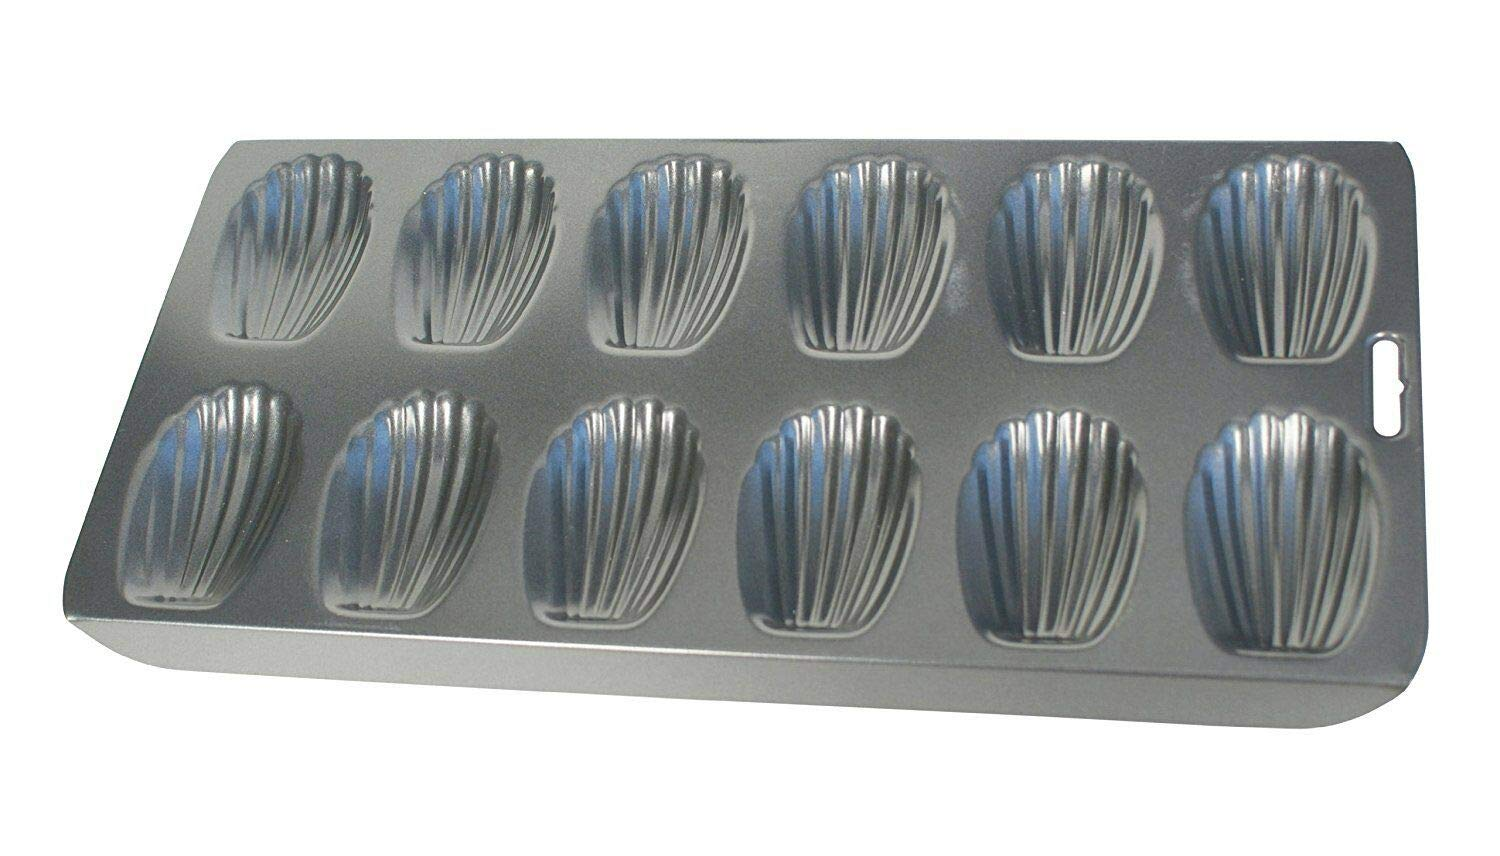 Akkapeary 12 Cup Heavy Duty Nonstick Madeleine Shell Shape Cake Mold Cookie Pan Hand Wash 0.75x 15.75x 7.5 inches carbon steel Black